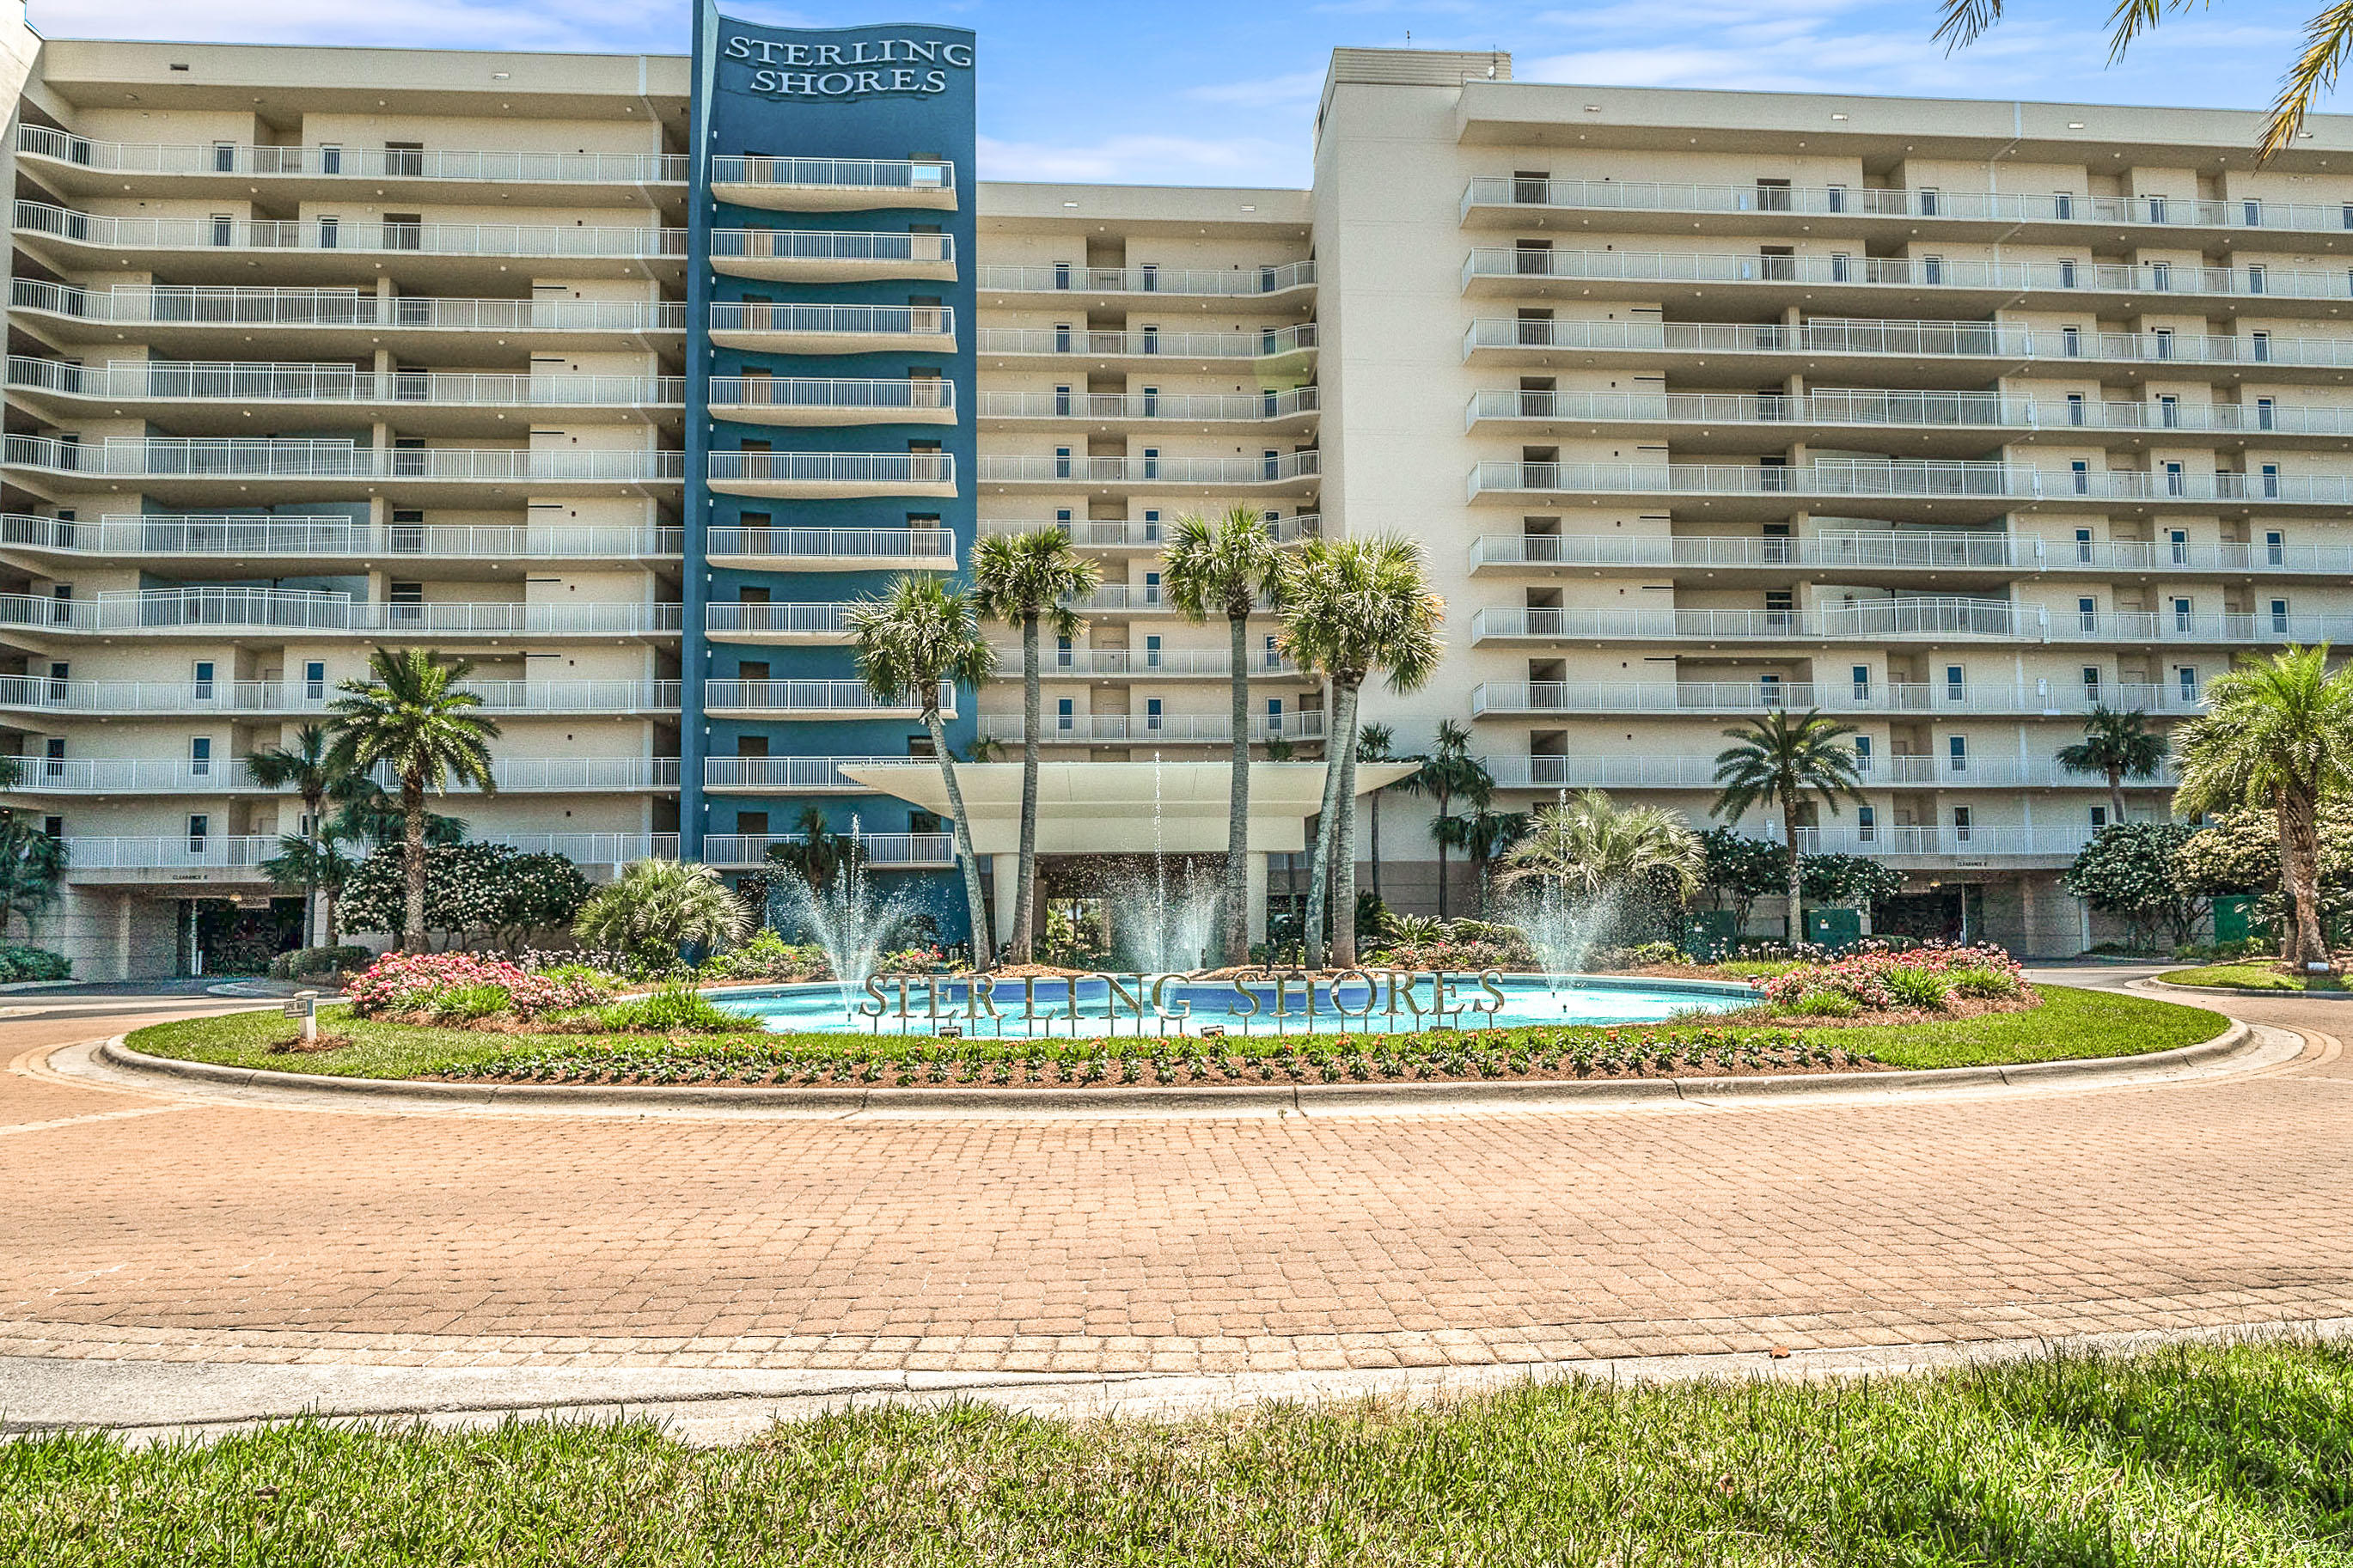 This condo is HUGE, over 1200 sf, freshly painted, and well appointed. You will enjoy the view overlooking the gorgeous pool and easy stroll to the beach.  This unit has beautiful white cabinets throughout, neutral tile flooring, and the master bedroom has a view of the Gulf. There are two bathrooms, one off the hall where the second bedroom is located and the other is an en suite in the master bedroom. The master en suite features a walk in shower and tub. This condo is located near restaurant row, and onsite you will be pleasantly surprised to have fine amenities such as: Beach side pool with bar and grill, Lagoon style pool, 42 seat surround sound meeting room/space, Mushroom fountain little's play area, large workout facility and